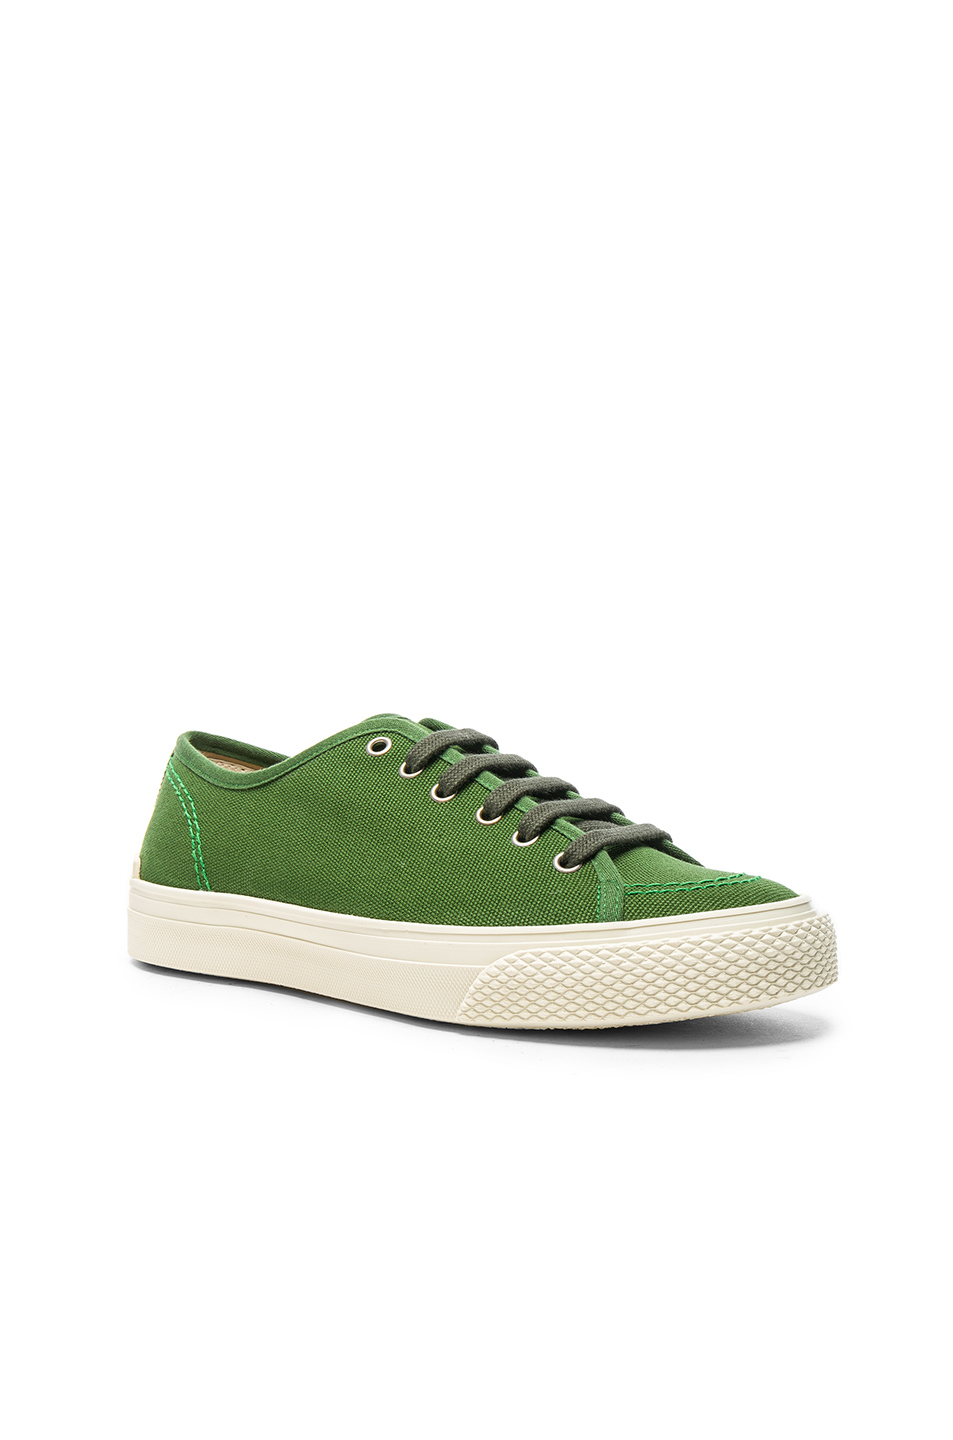 Stella McCartneySneakers in Green